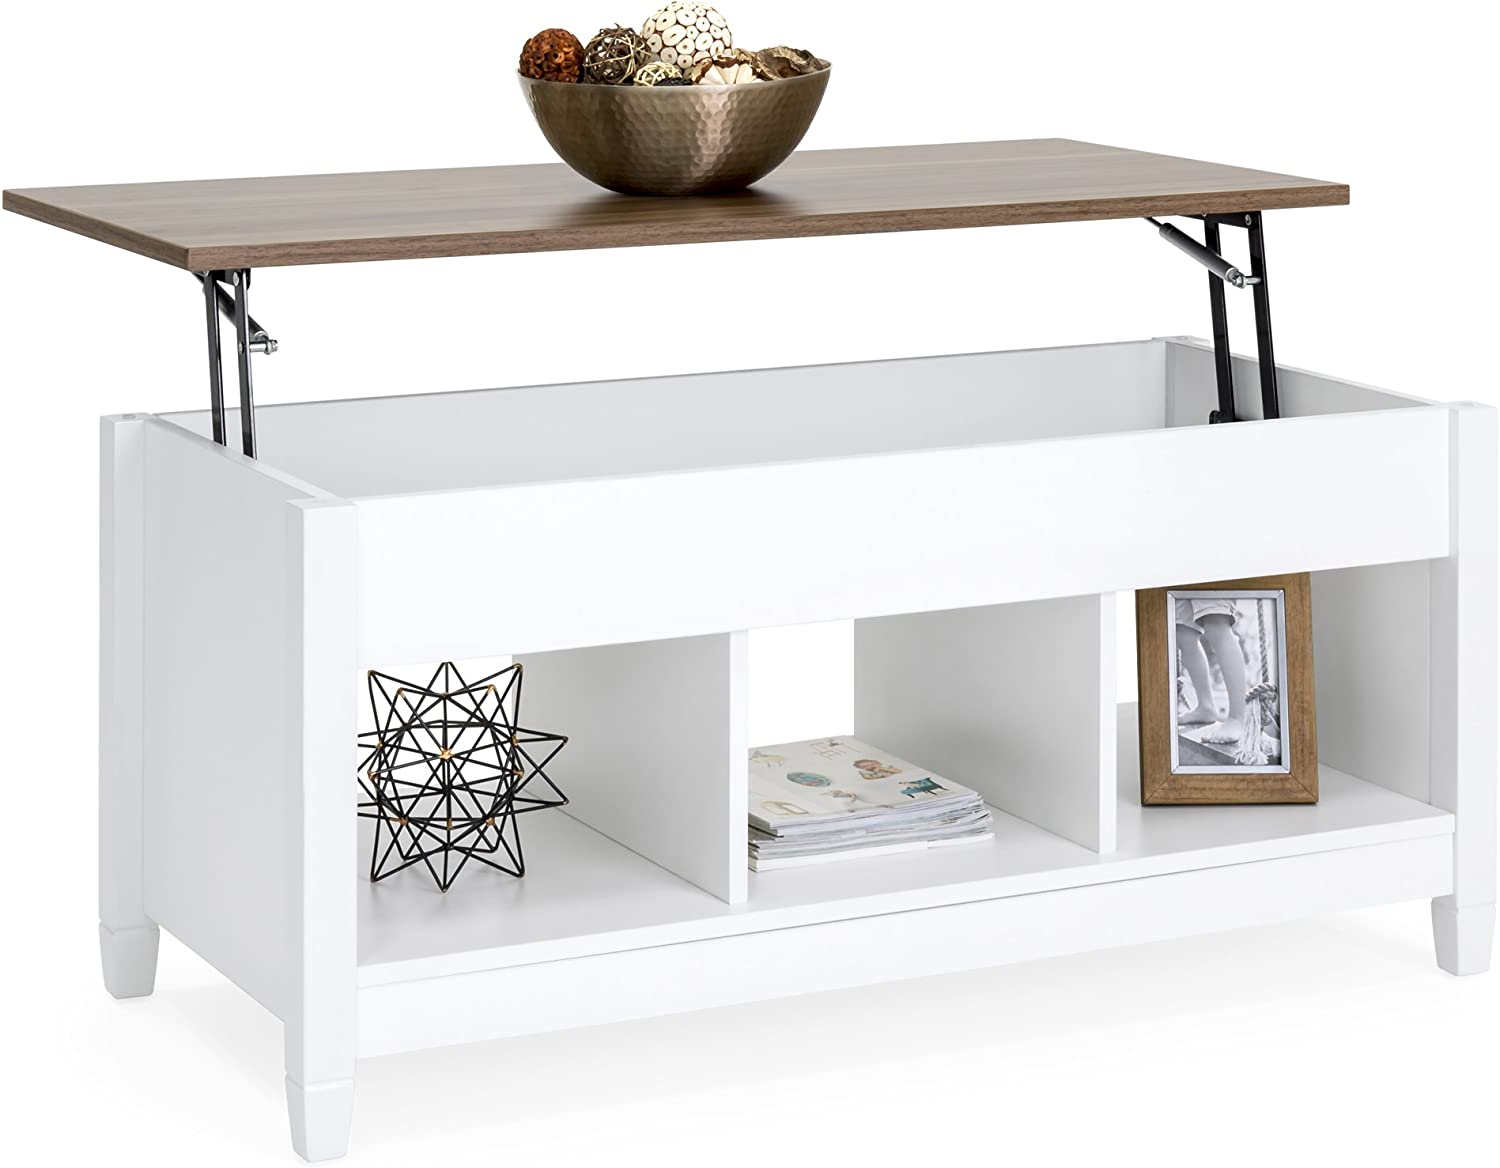 Best Choice Products Wooden Modern Multifunctional Coffee Dining Table for Living Room, Décor, Display w/Hidden Storage and Lift Tabletop, White